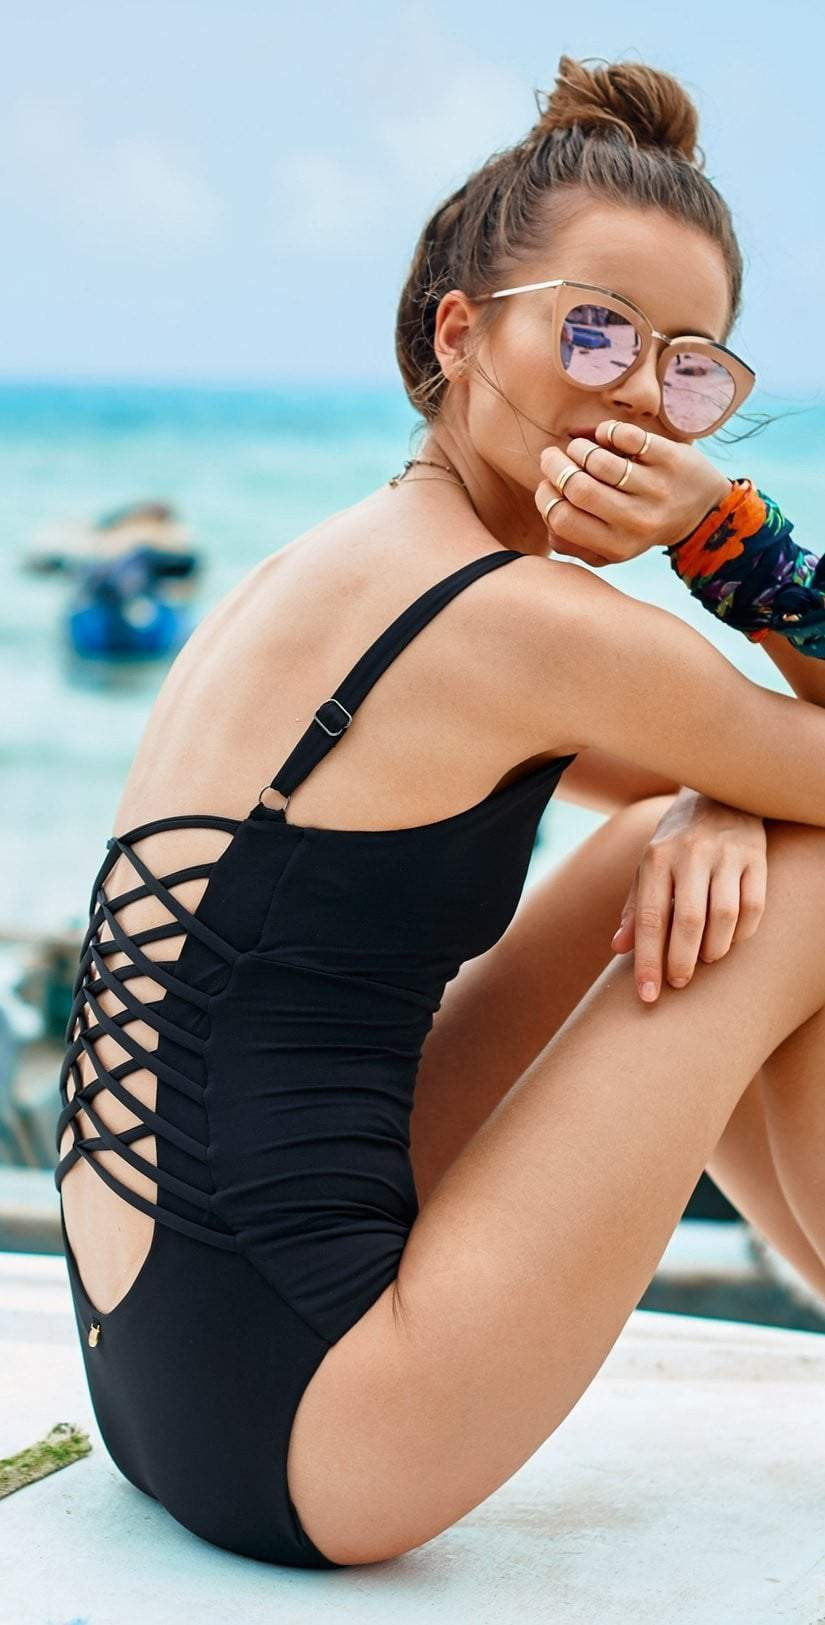 17c7622a6d945 Malai Chief Fishbone One Piece in Black OP0084-BLK – South Beach ...